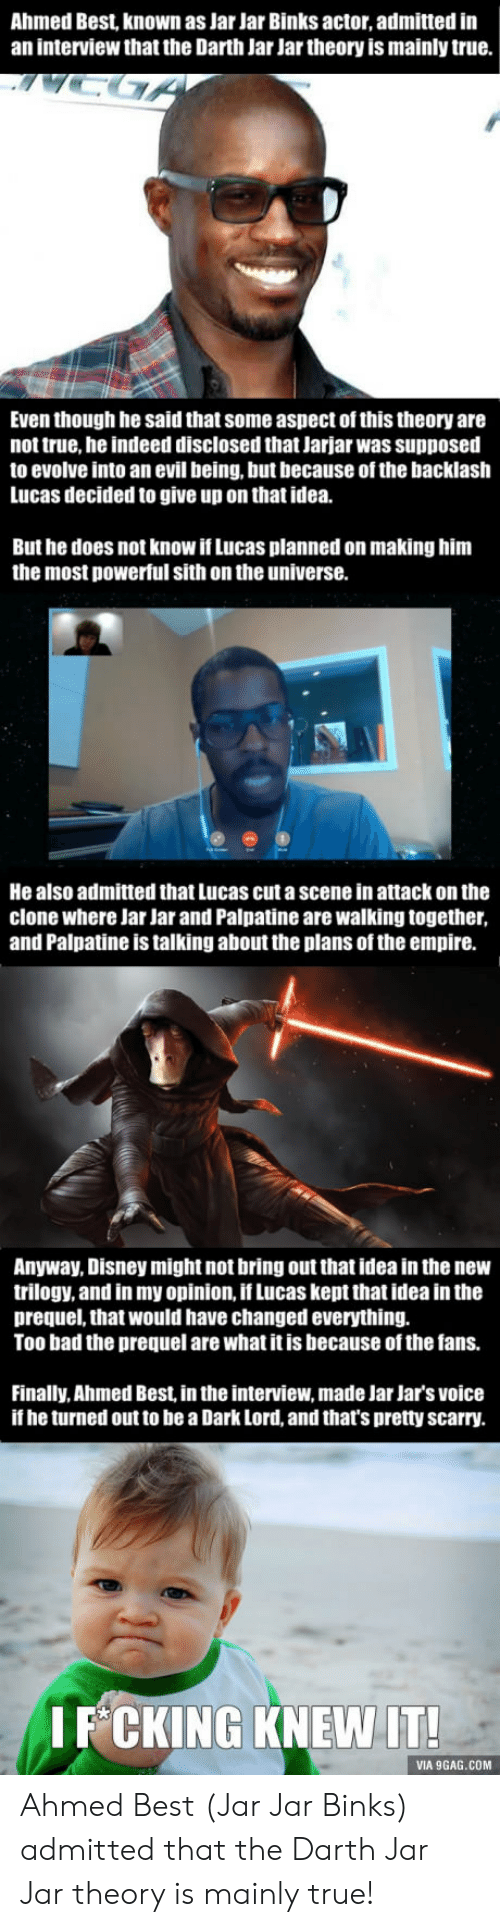 Jar Jar Binks: Ahmed Best, known as Jar Jar Binks actor, admitted in  an interview that the Darth Jar Jar theory is mainly true.  Even though he said that some aspect of this theory are  not true, he indeed disclosed that Jarjar was supposed  to evolve into an evil being, but because of the backlash  Lucas decided to give up on that idea.  But he does not know if Lucas planned on making him  the most powerful sith on the universe.  He also admitted that Lucas cut a scene in attack on the  clone where Jar Jar and Palpatine are walking together  and Palpatine is talking about the plans of the empire.  Anyway, Disney might not bring out that idea in the new  trilogy, and in my opinion, if Lucas kept that idea in the  prequel, that would have changed everything.  Too bad the prequel are what it is because of the fans.  Finally, Ahmed Best in the interview, made Jar Jar's voice  if he turned out to be a Dark Lord, and that's pretty scarry.  I F CKING KNEW IT  VIA 9GAG.COM Ahmed Best (Jar Jar Binks) admitted that the Darth Jar Jar theory is mainly true!